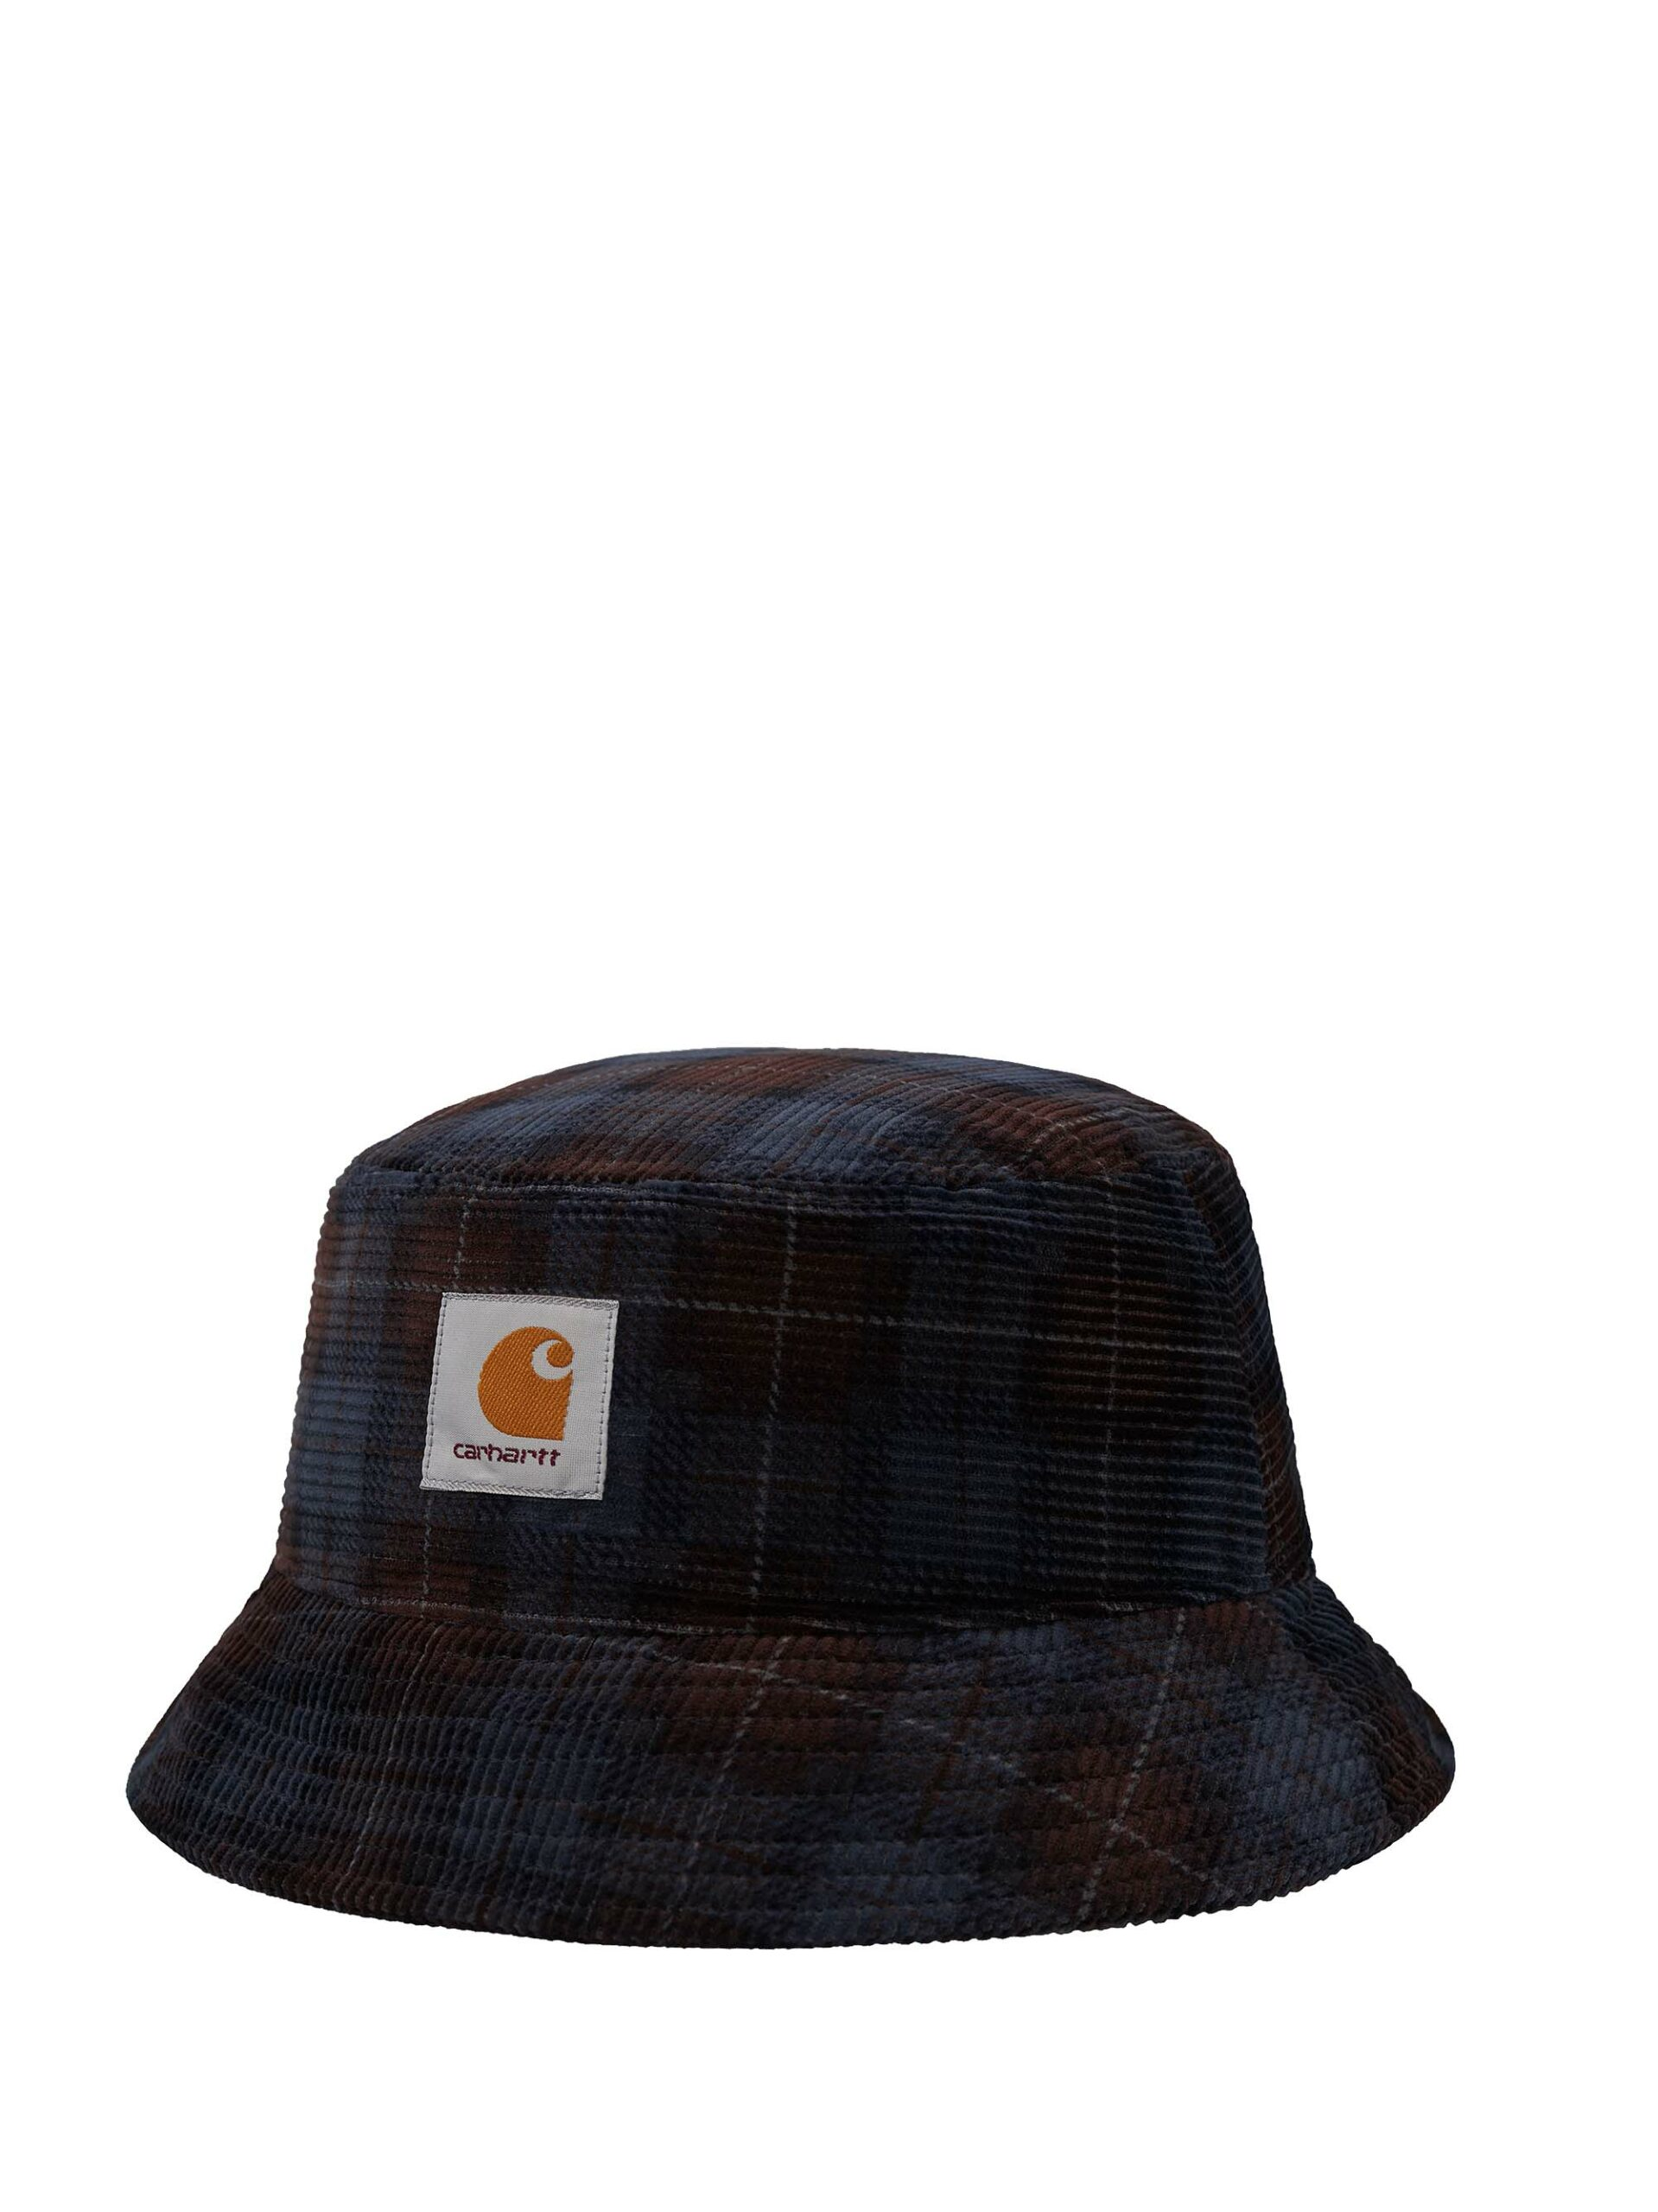 <p class='small-title'>CARHARTT WIP</p>Cord Bucket Hat Breck Check Print